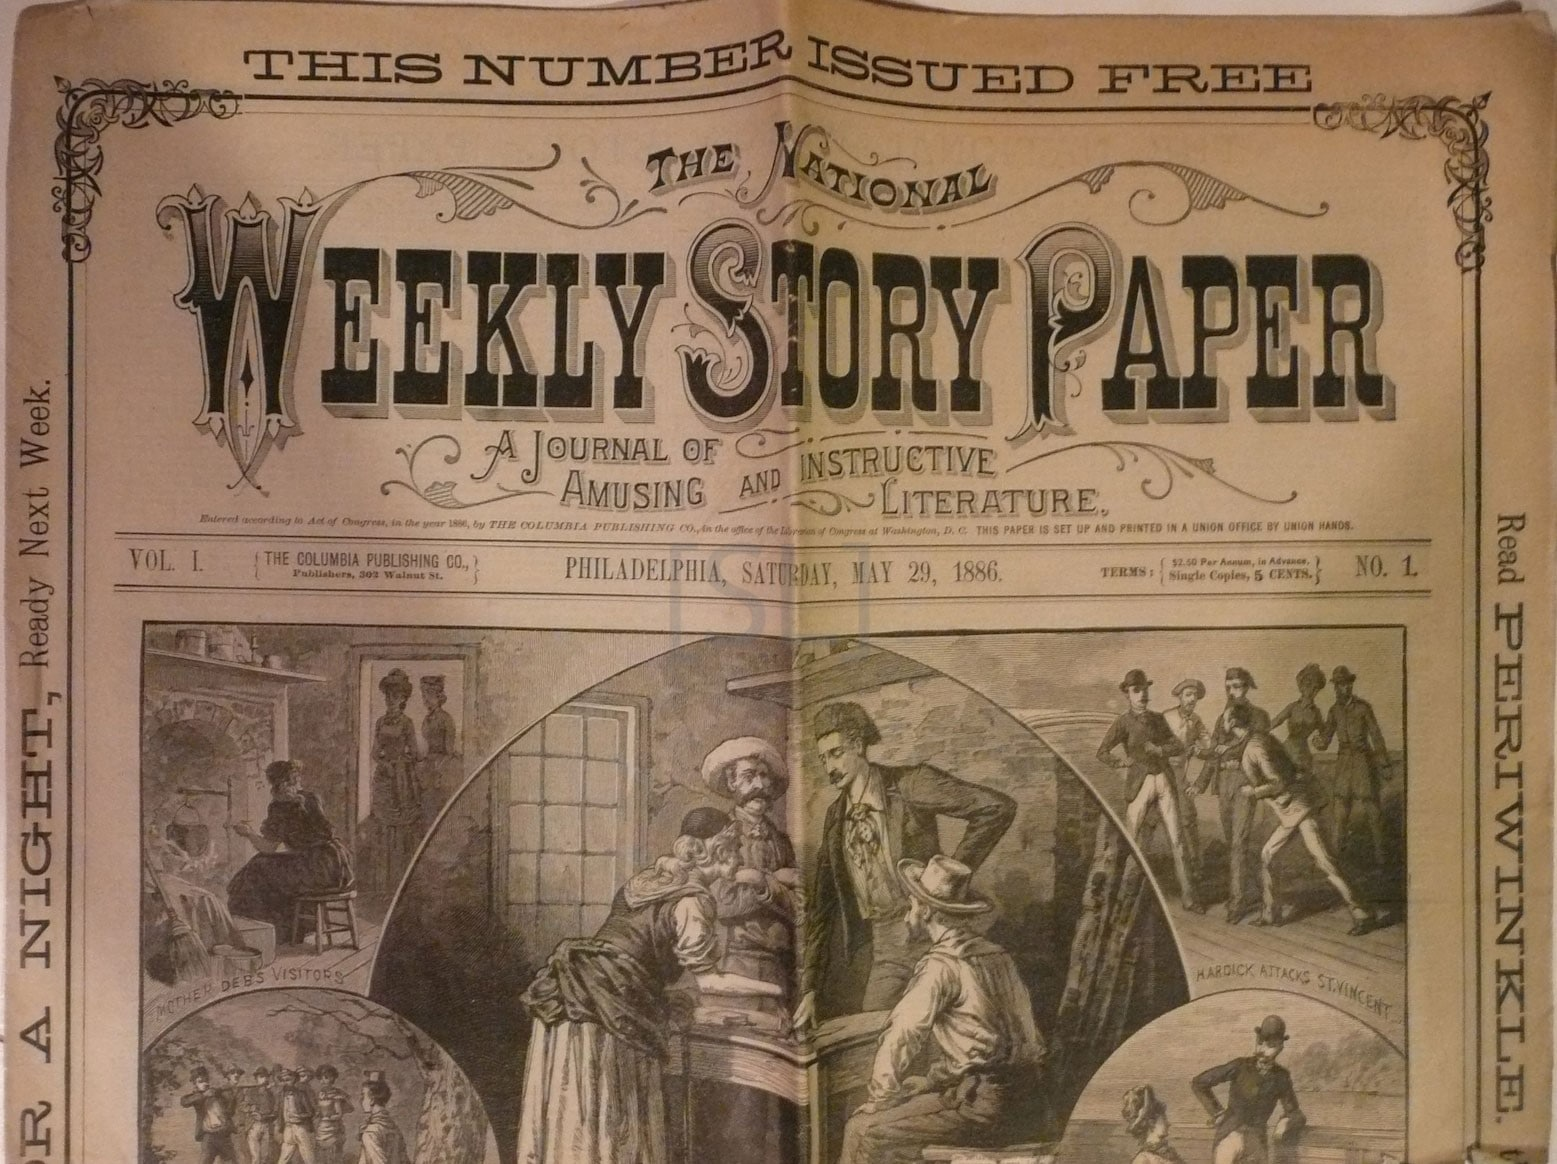 National Weekly Story Paper